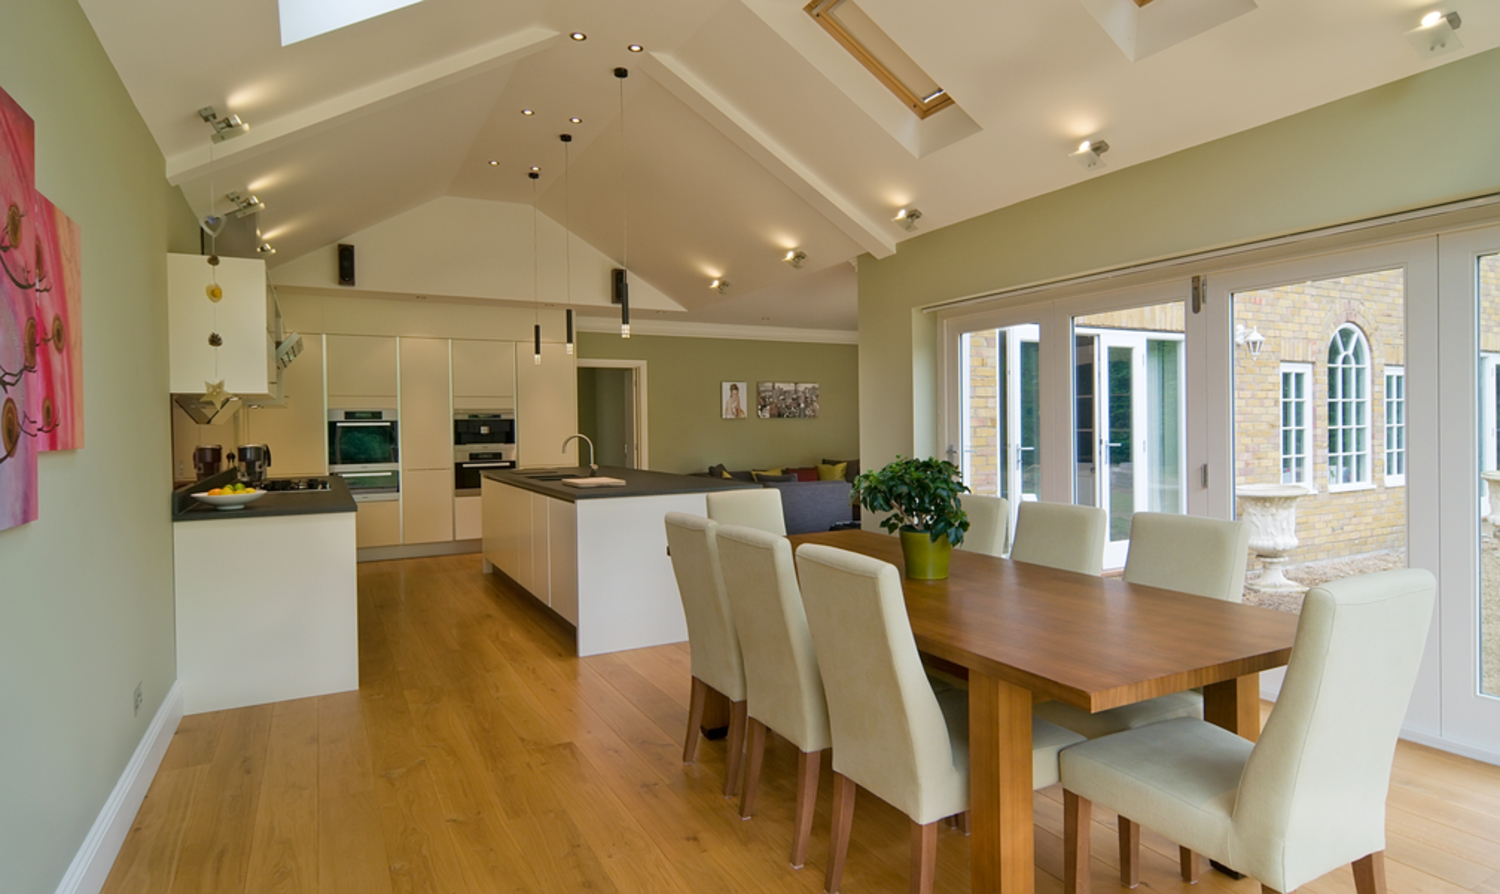 Planning permission - Do you need it?